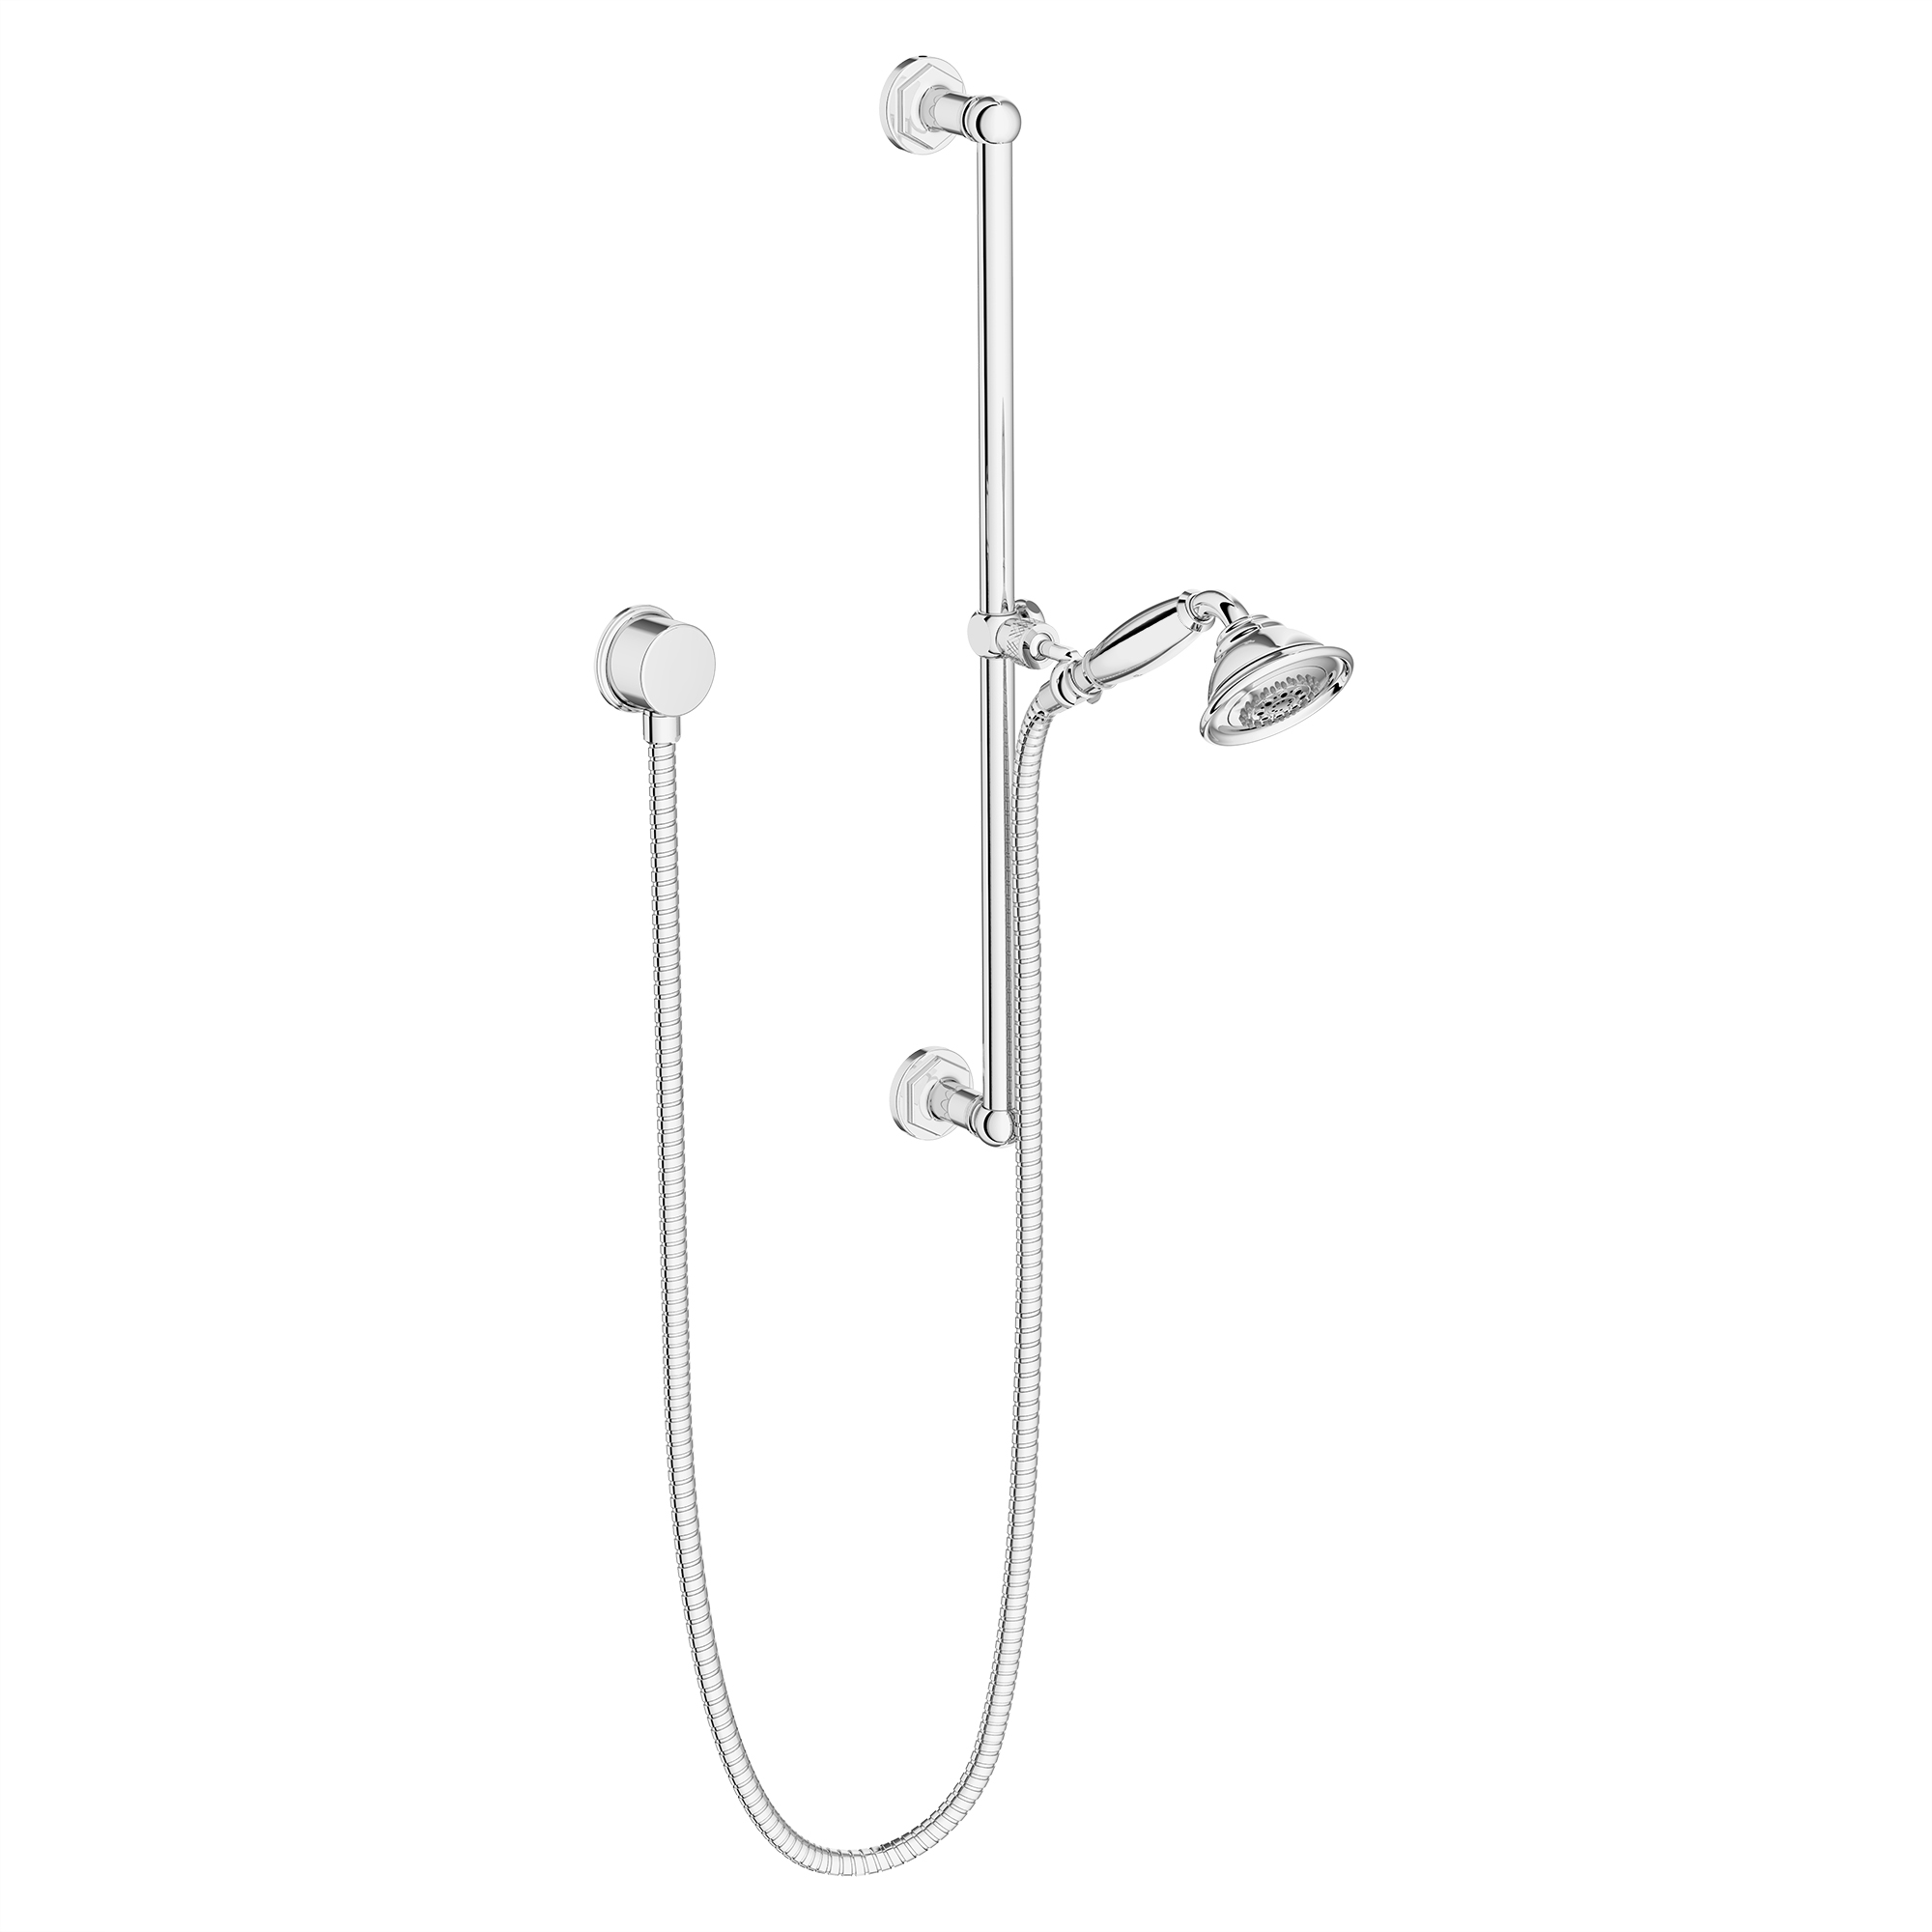 Oak Hill Personal Shower Set With Handshower